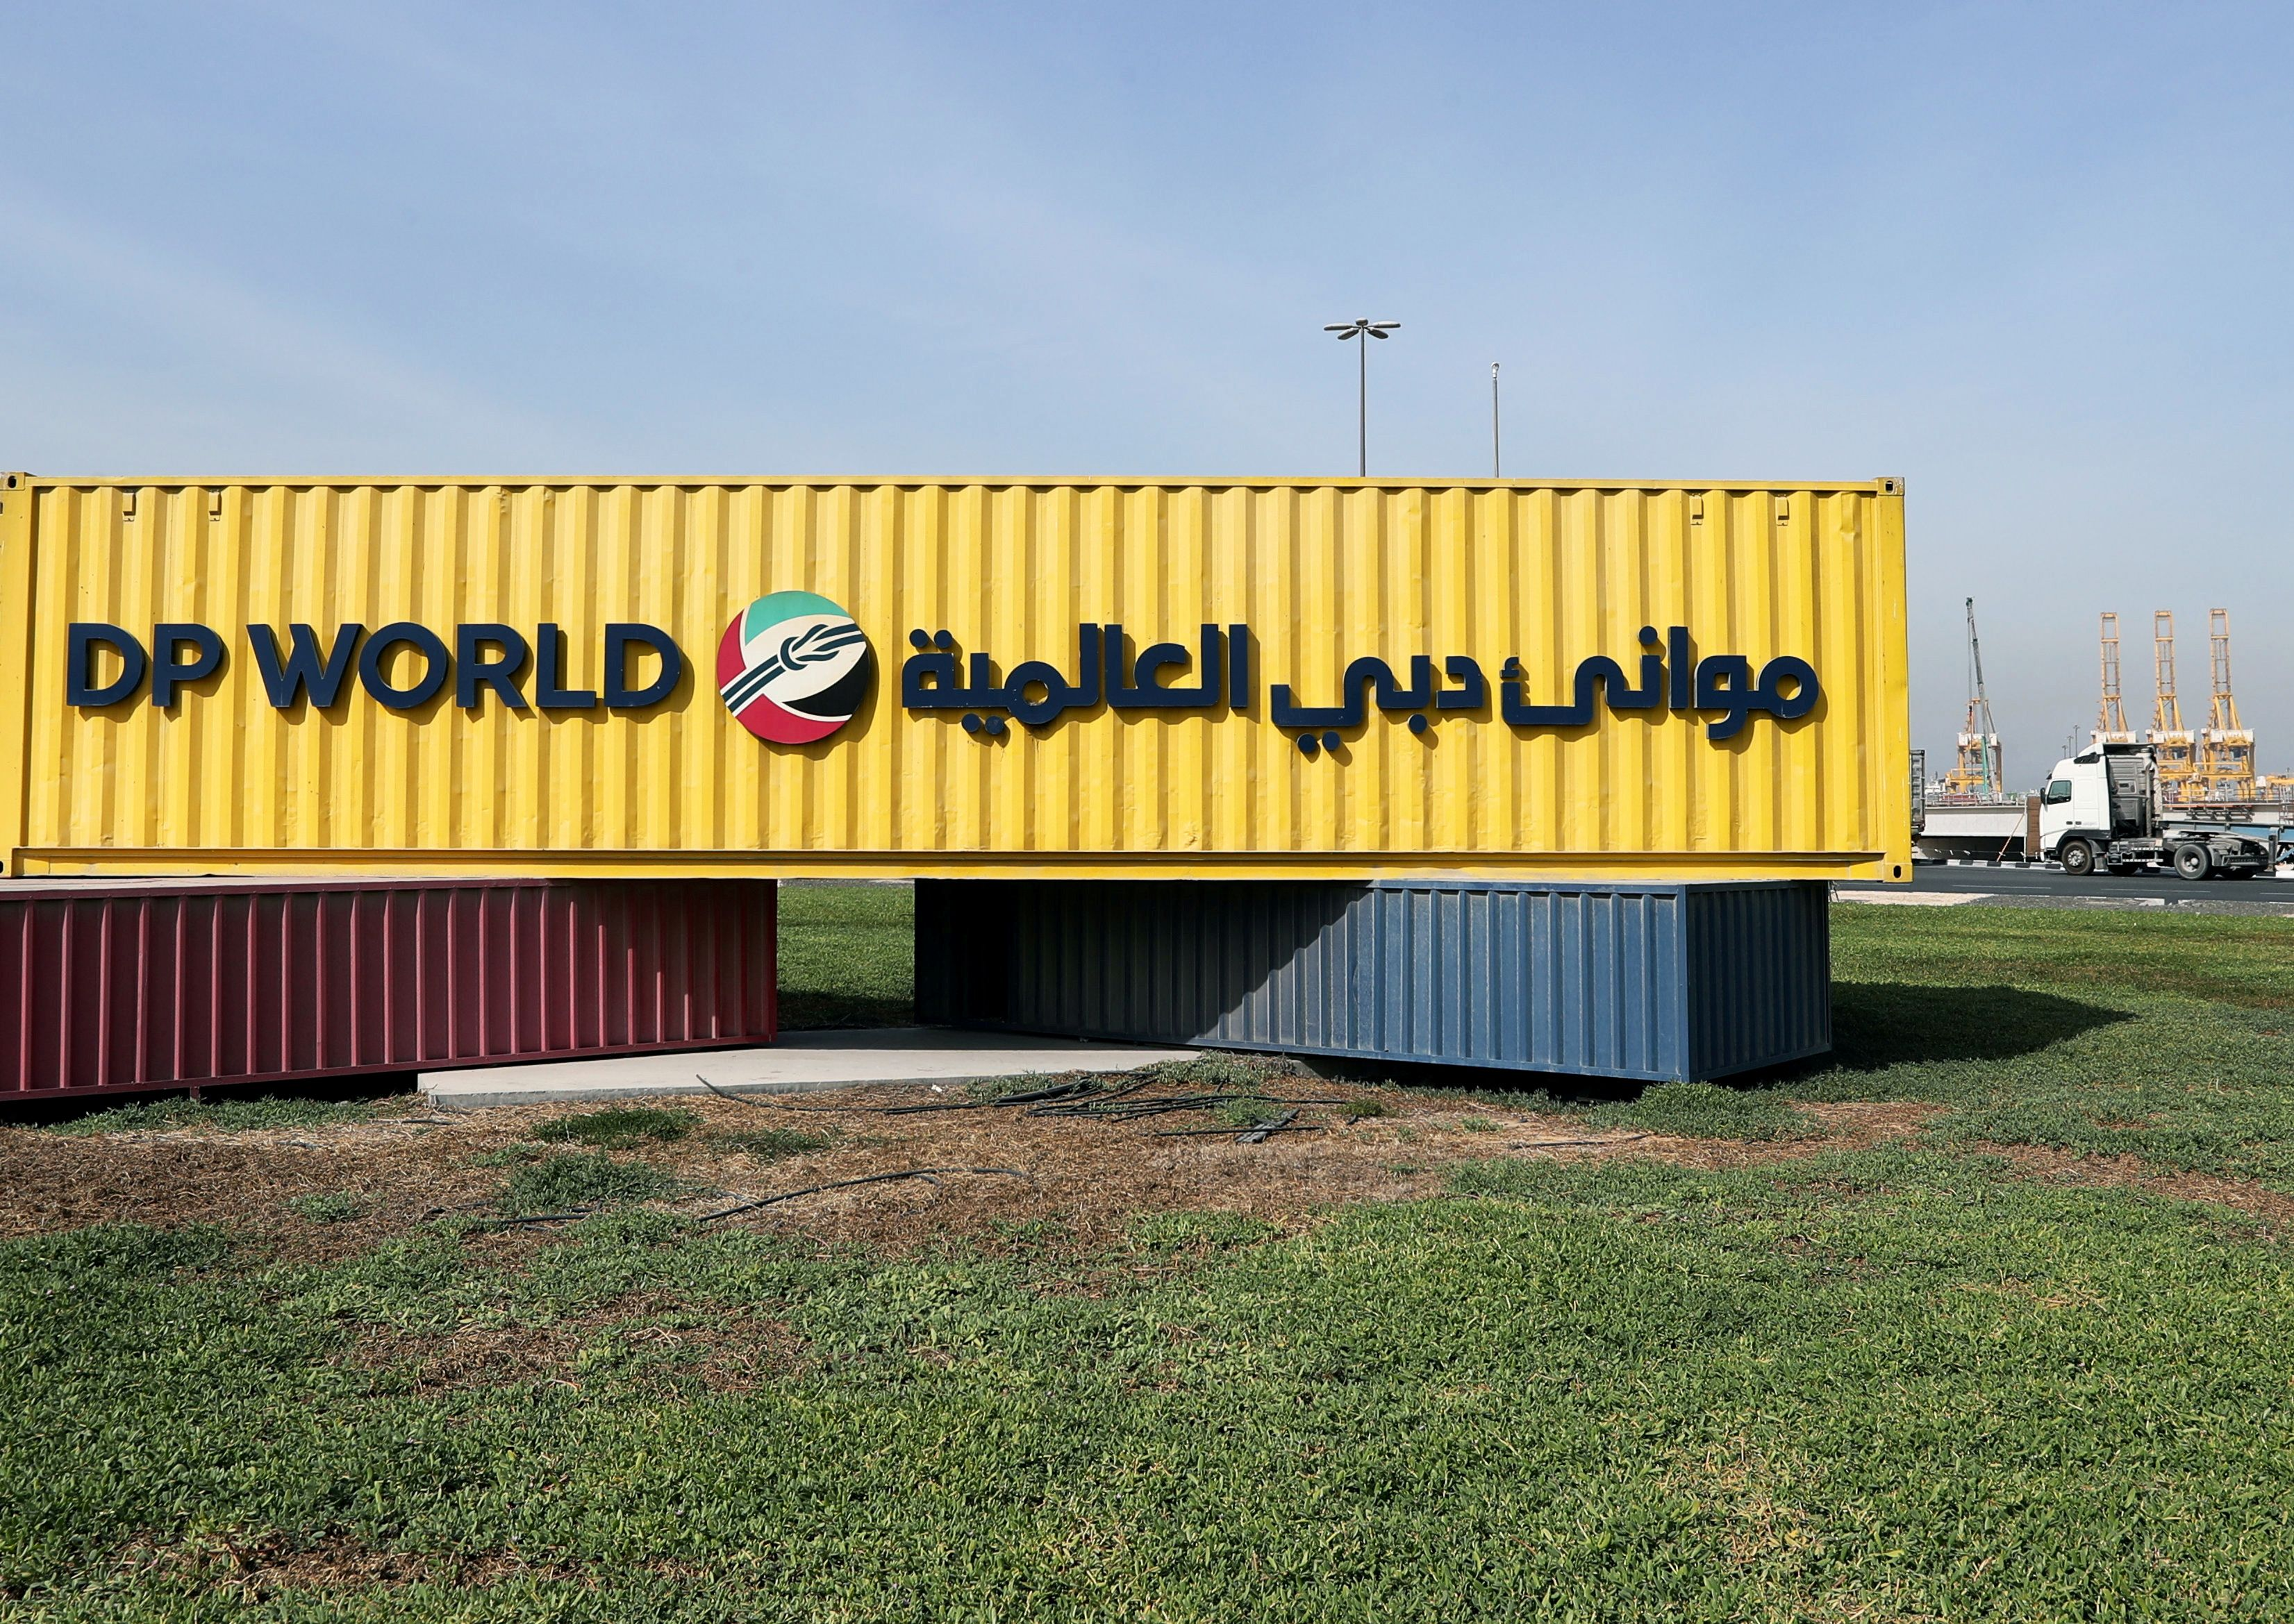 The corporate logo of DP World is seen at Jebel Ali Port in Dubai, United Arab Emirates, December 27, 2018. REUTERS/Hamad I Mohammed/File Photo